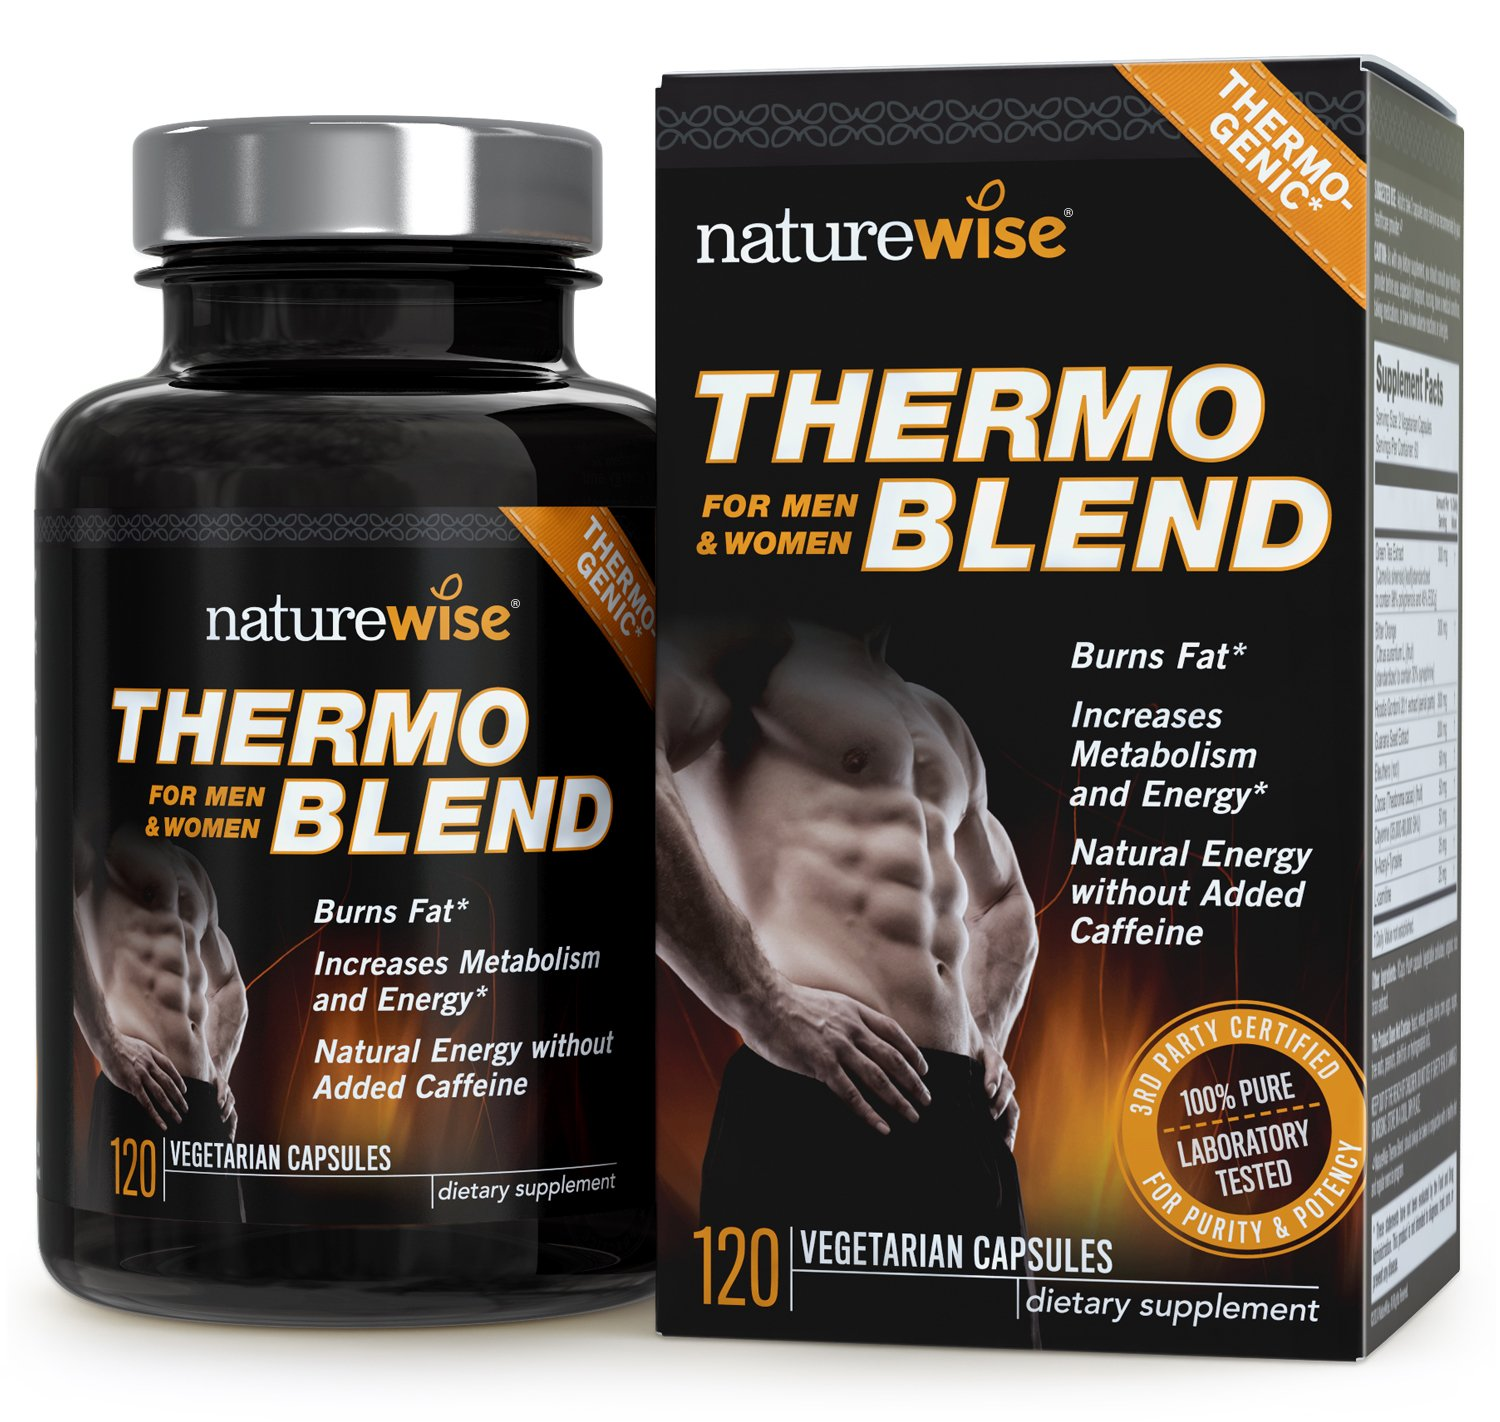 NatureWise Thermo Blend Advanced Formula Thermogenic Fat Burner for Weight Loss and Natural Energy, 2-month supply, 120 count